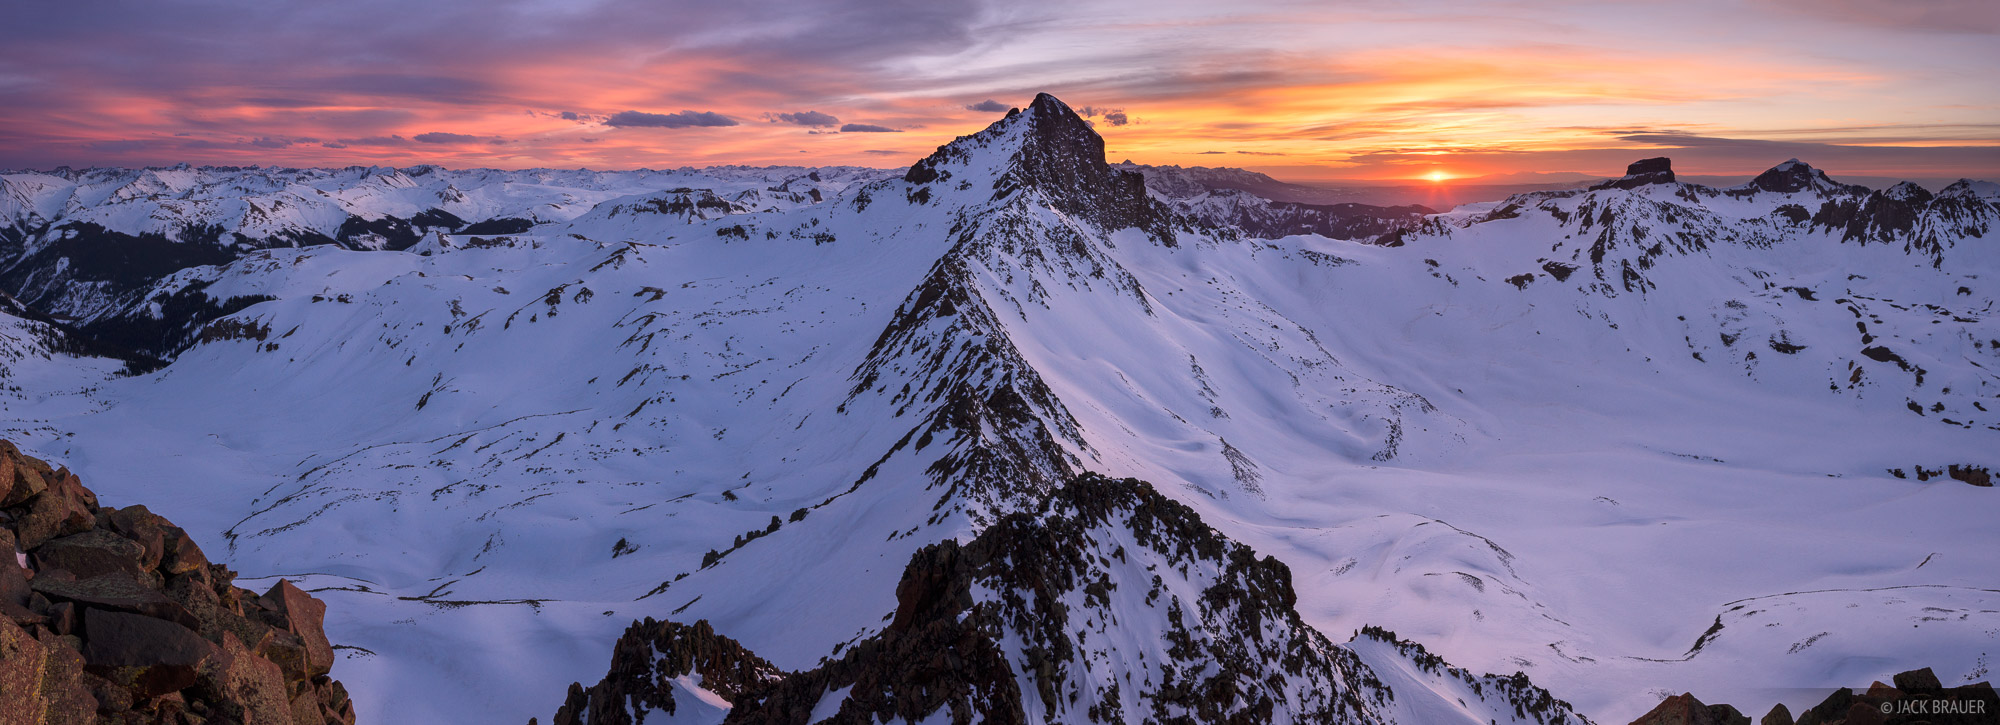 Colorado, San Juan Mountains, Uncompahgre Wilderness, Wetterhorn Peak, Matterhorn Peak, panorama, sunset, photo